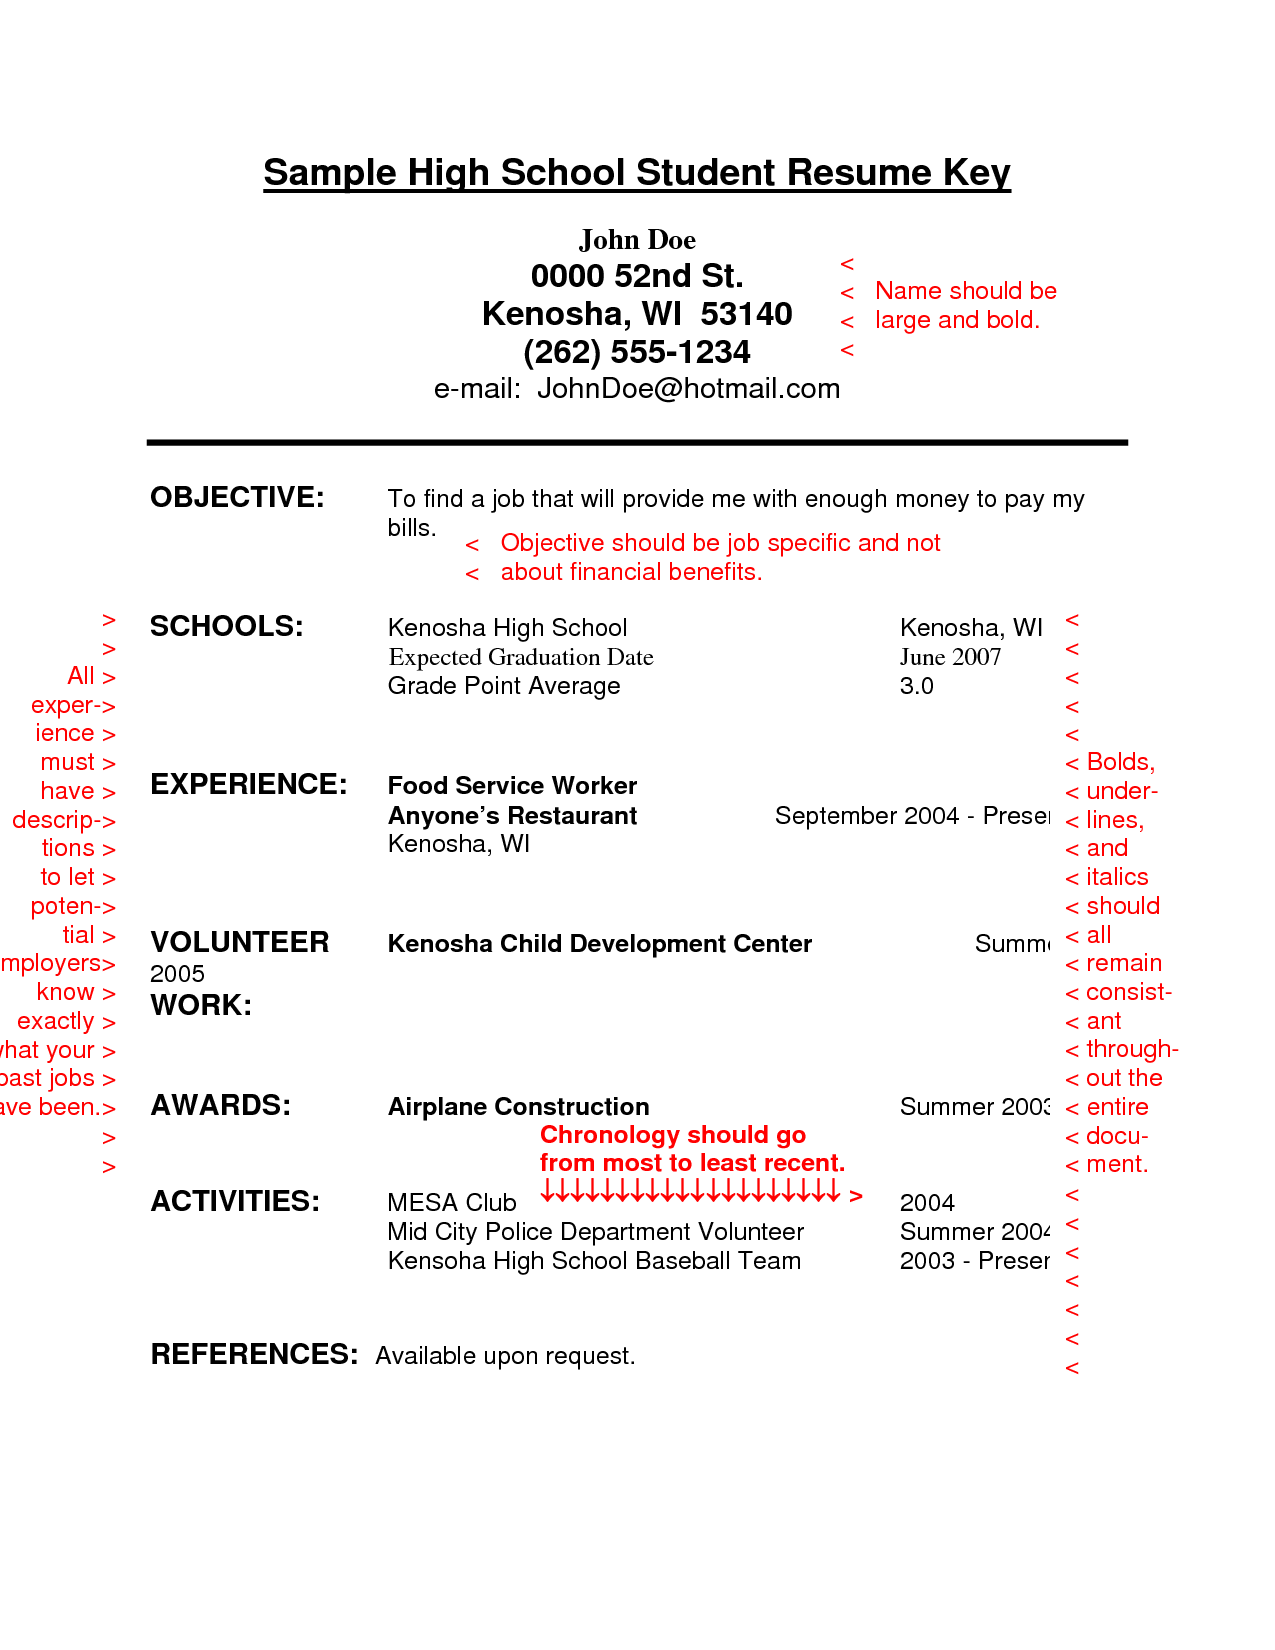 Current College Student Resume Resume Sample For High School Students With No Experience  Http